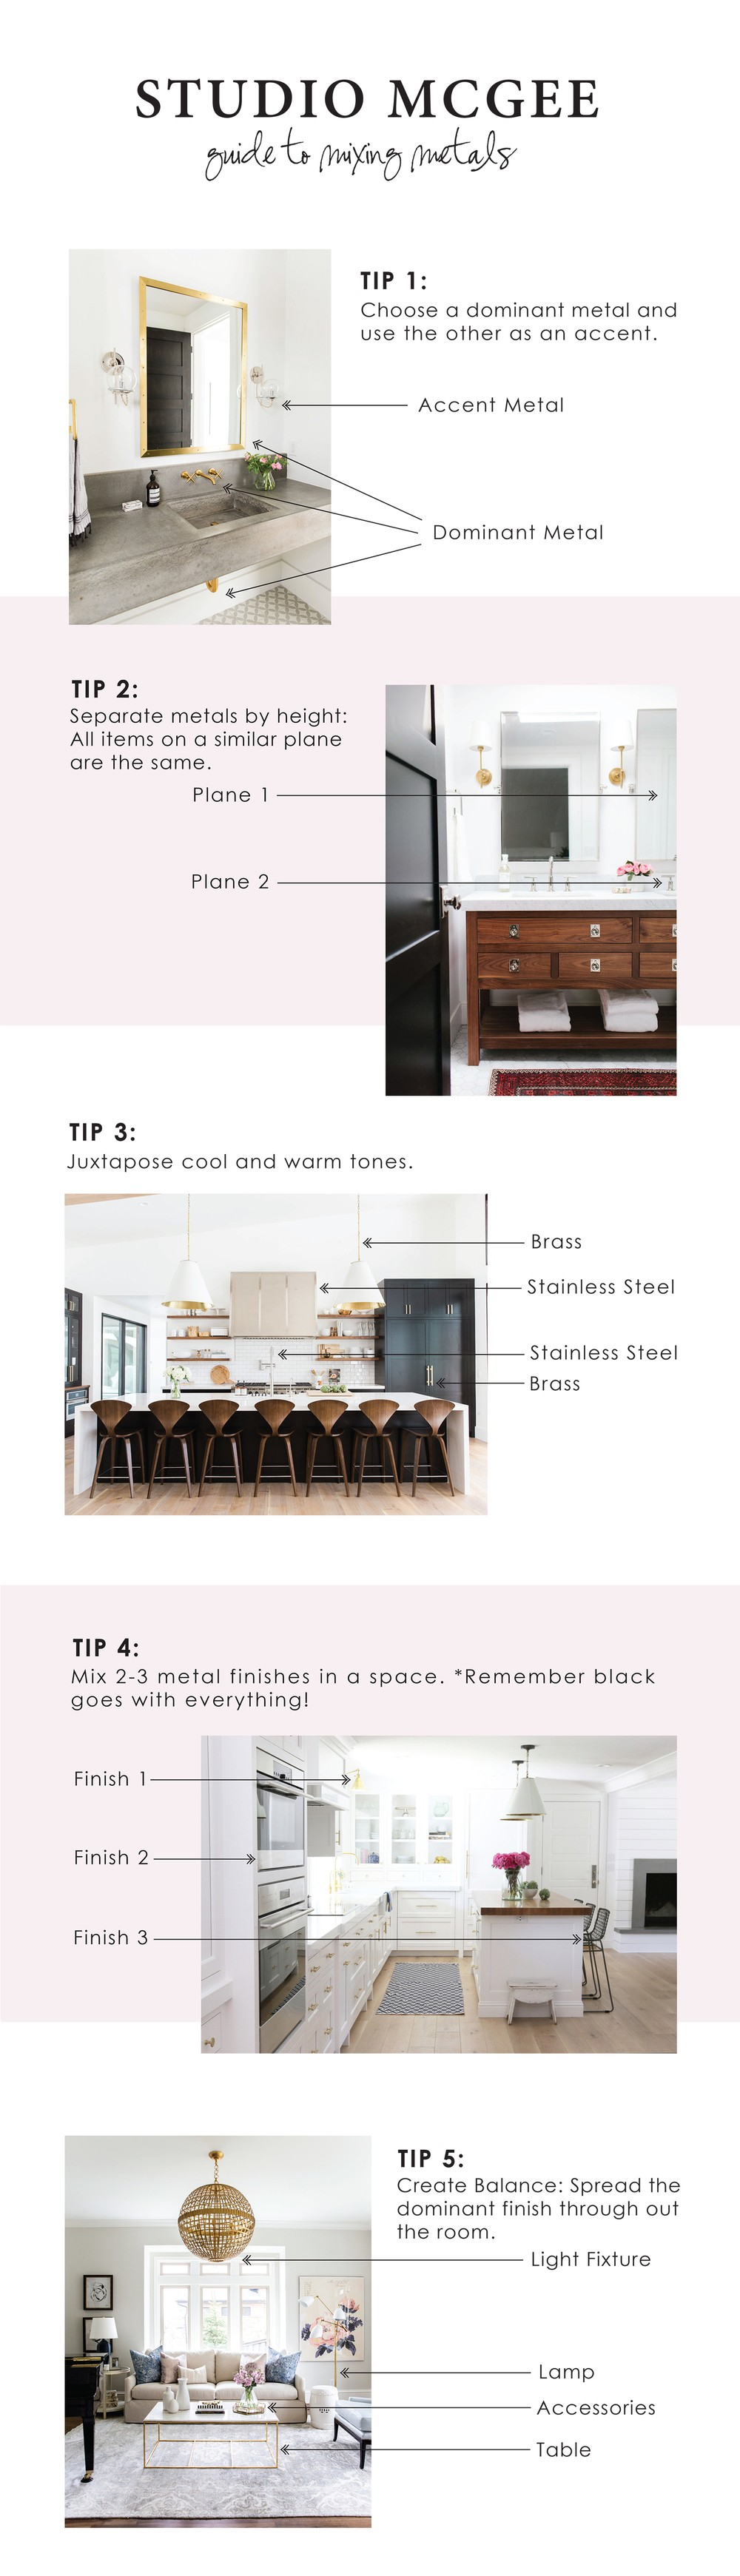 Studio+McGee's+Guide+to+Mixing+Metals (1).jpg